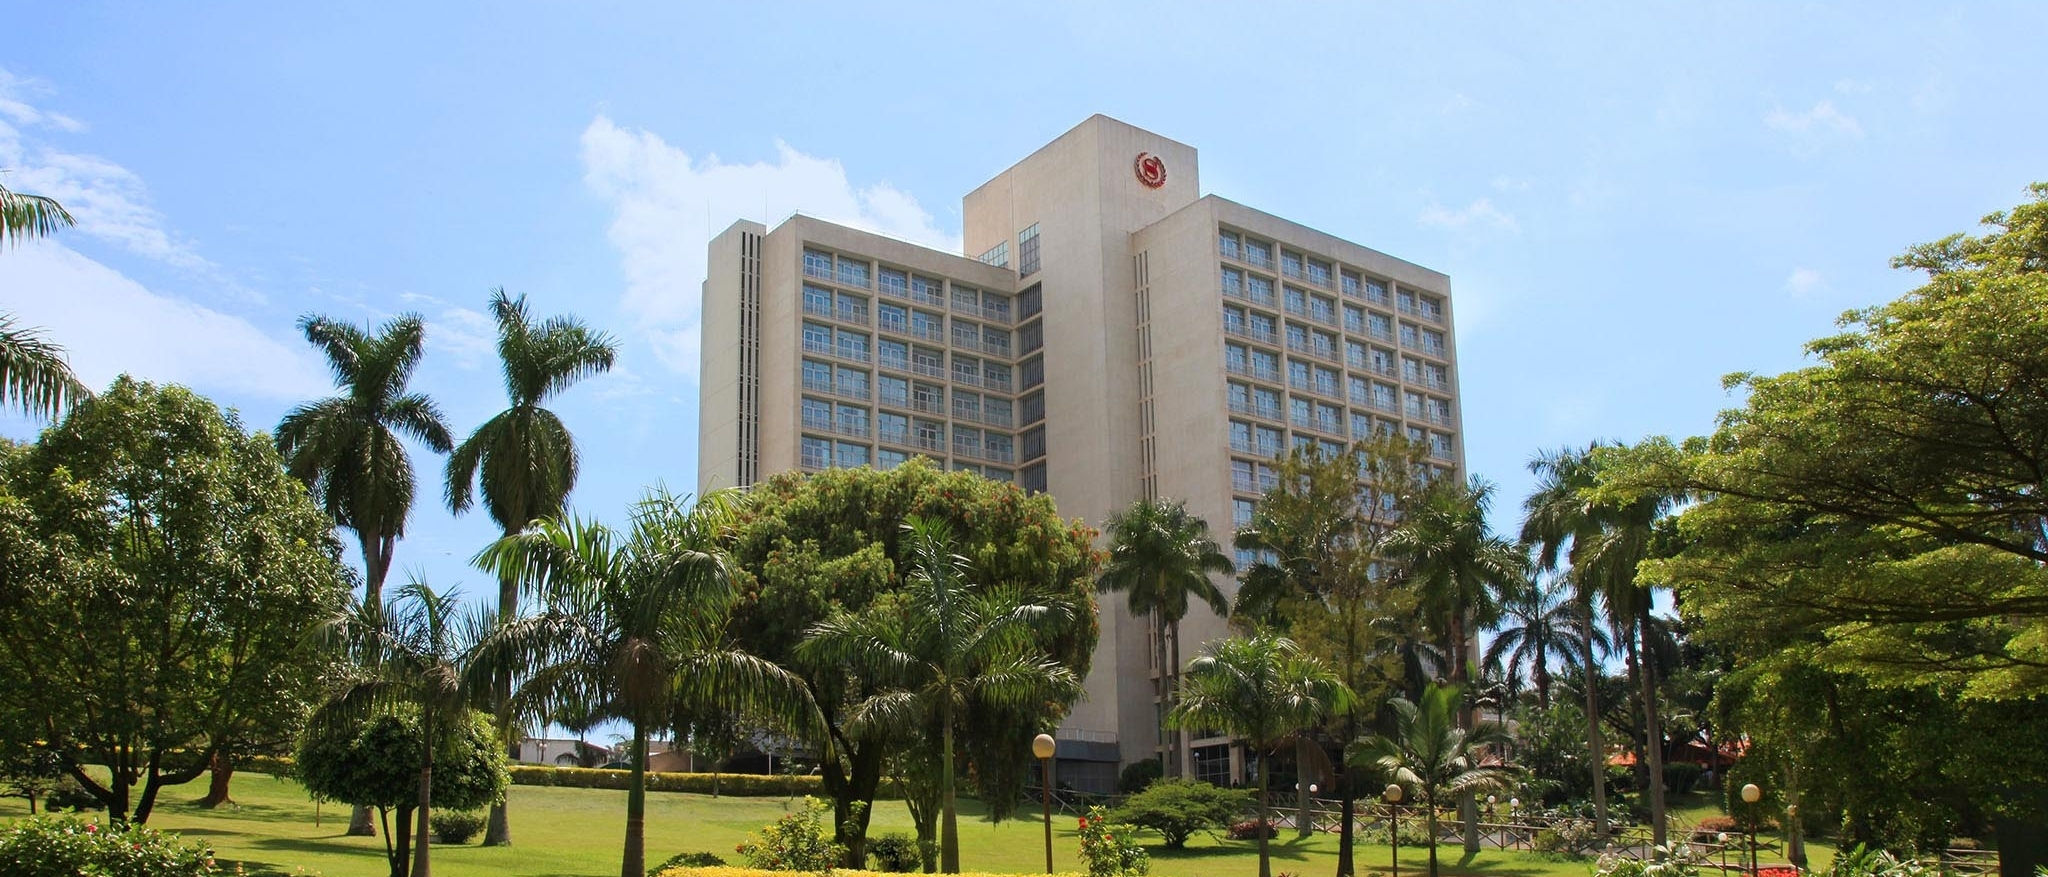 Sheraton Kampala Hotel External View with trees in foreground